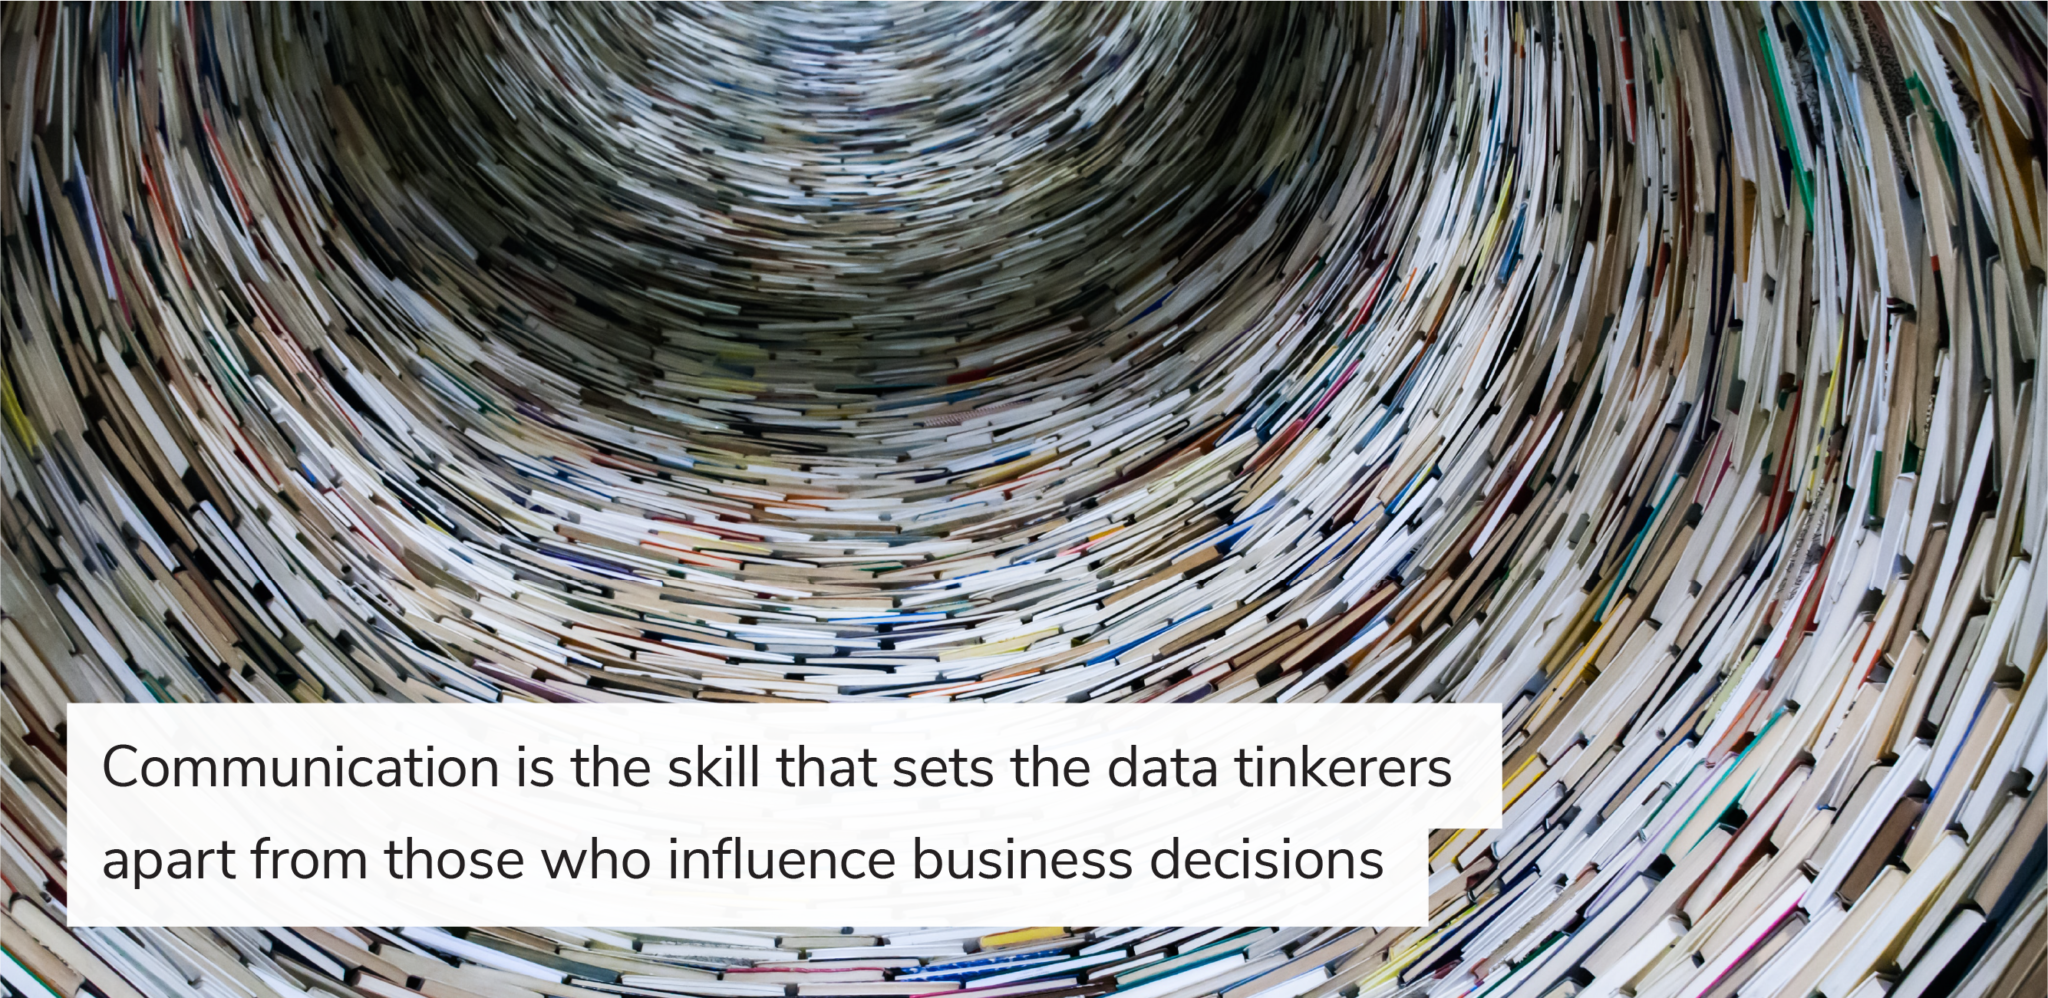 "Tower of books with overlaid text ""Communication is the skill that sets the data tinkerers apart from those who influence business decisions"""